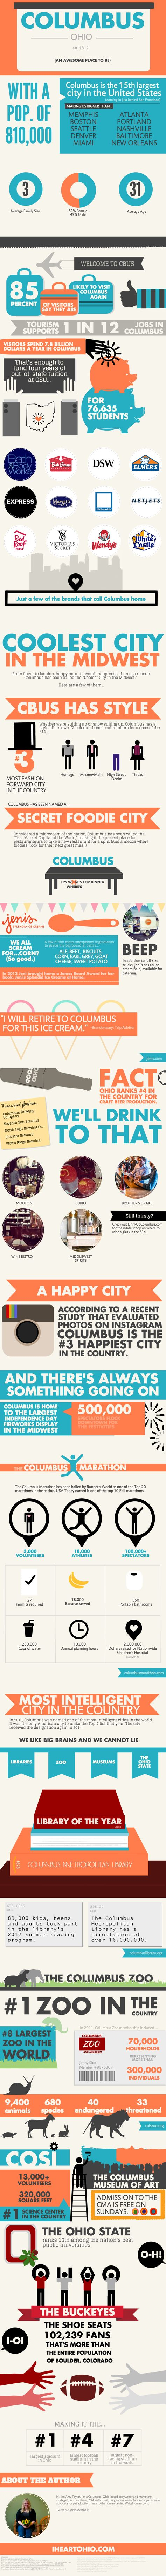 Columbus, Ohio - an awesome place to be! | #infographic created in #free @Piktochart #Infographic Editor at www.piktochart.com